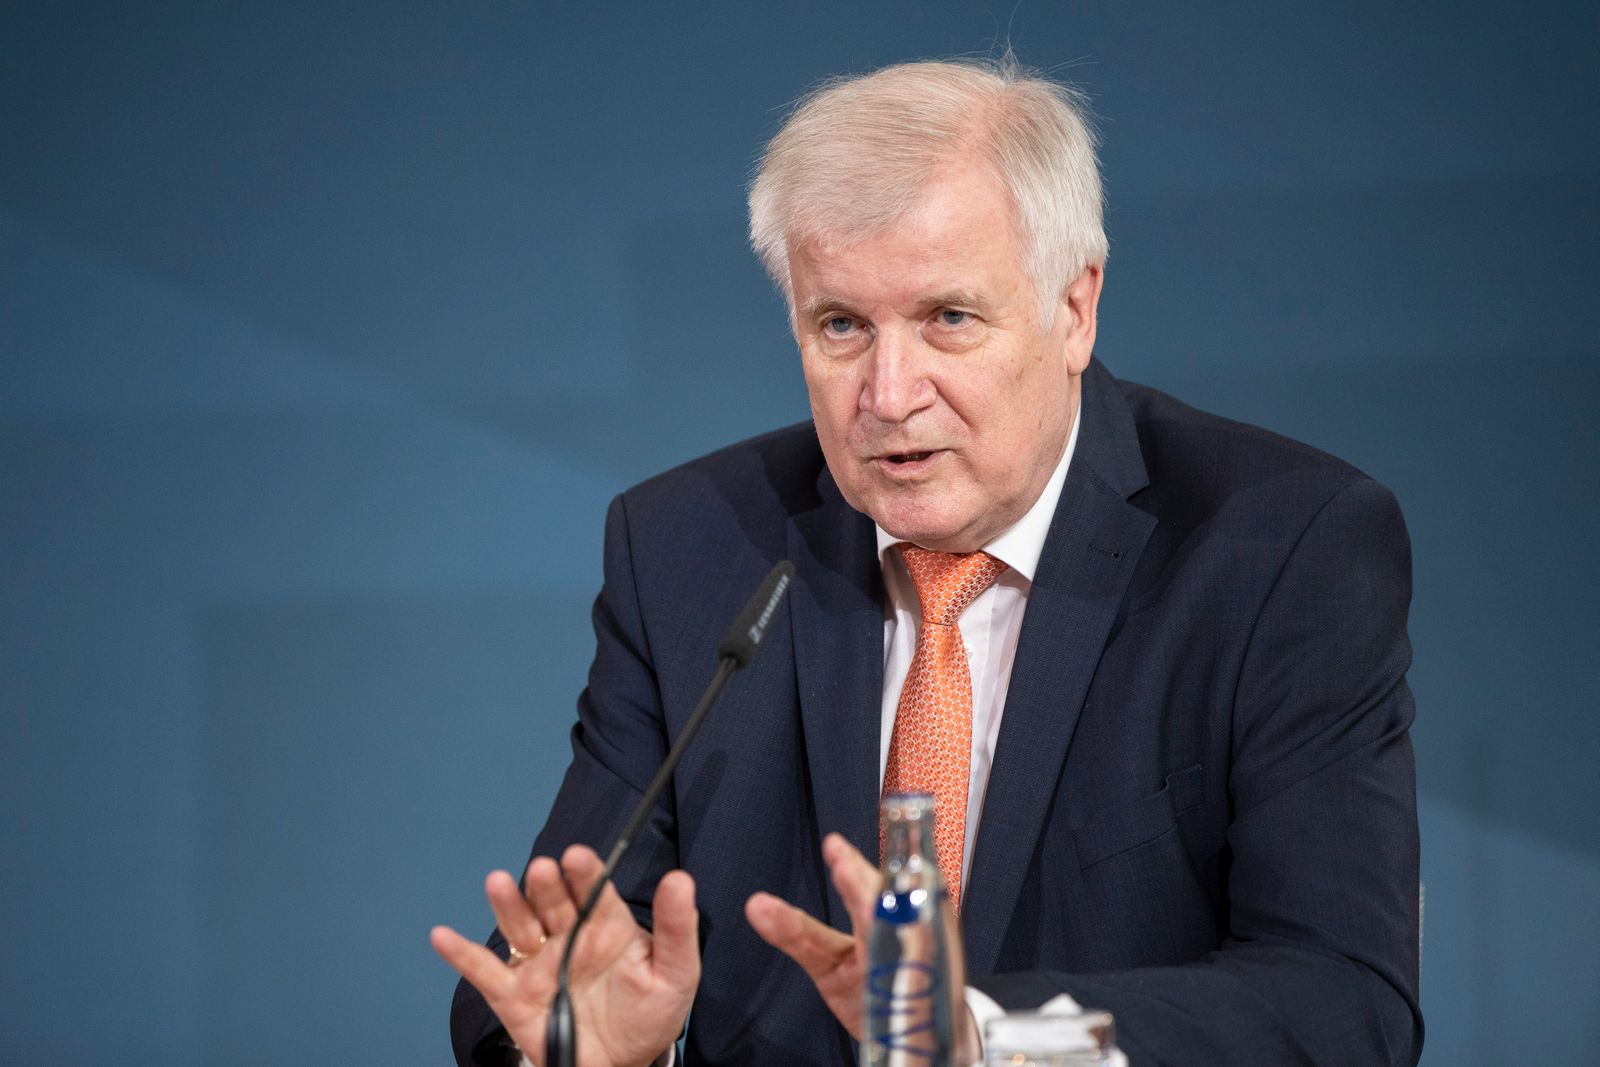 Interior Minister Seehofer Meets With EU Commissioner Schinas Over Refugee Policy